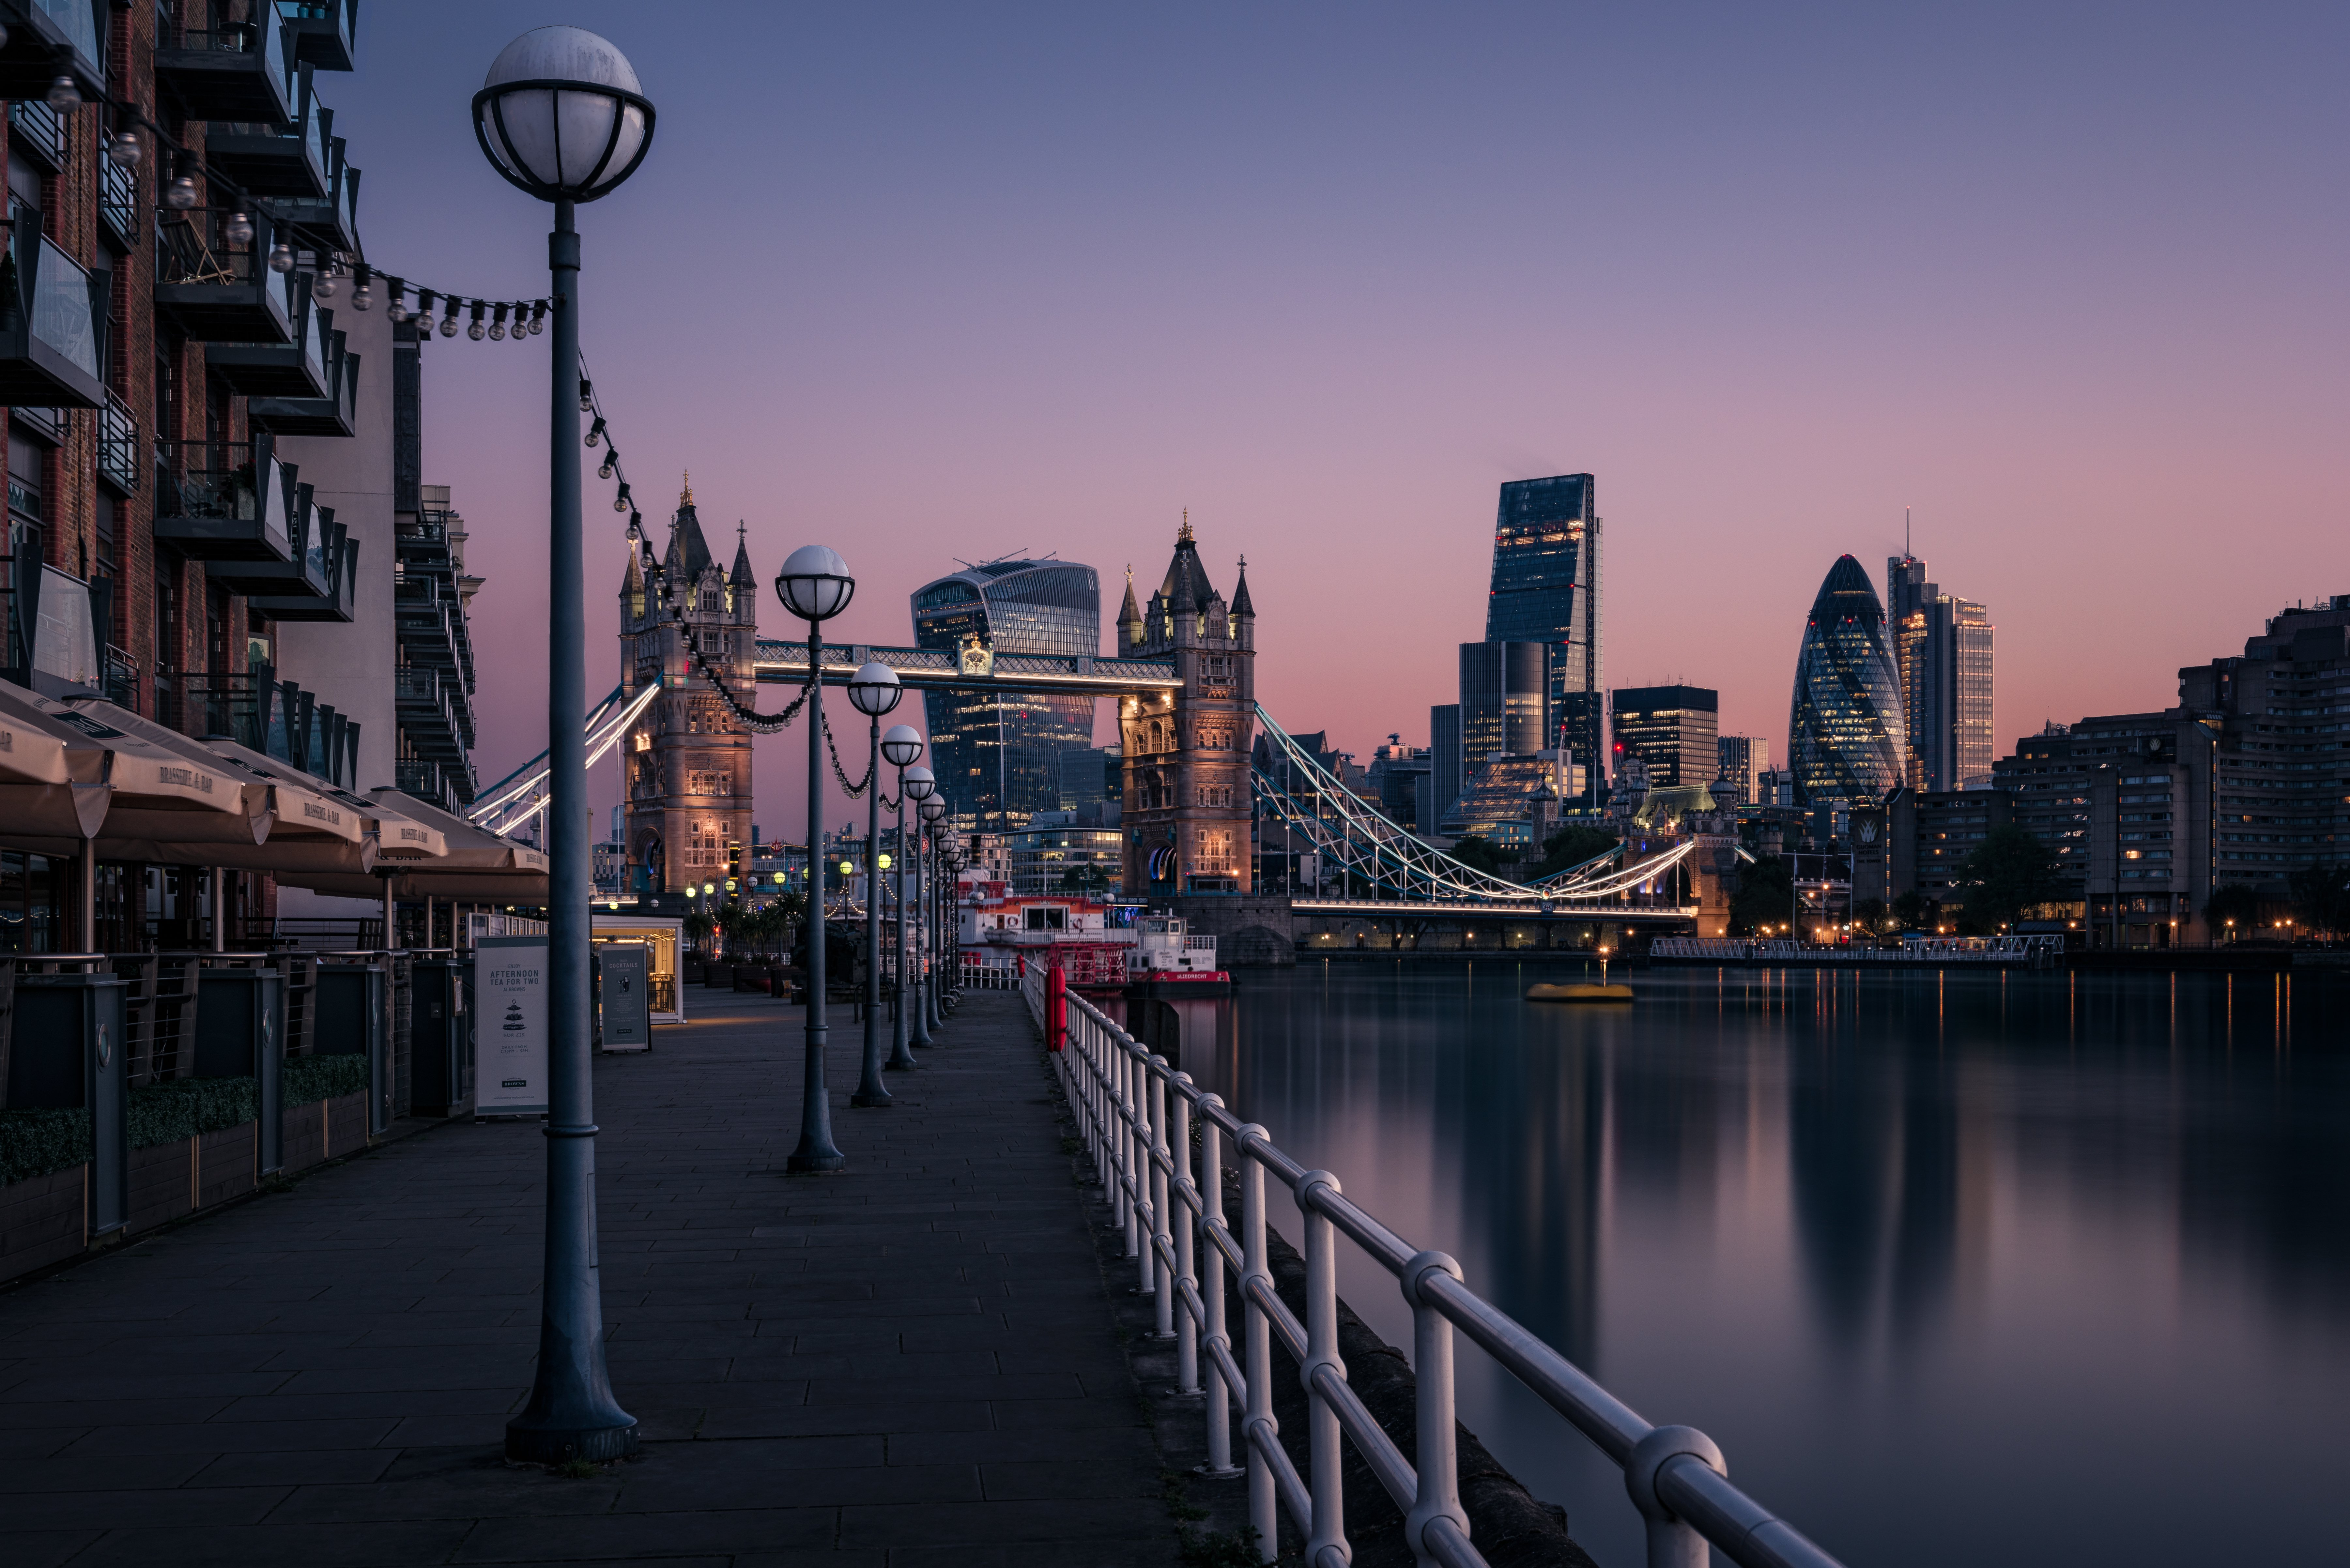 london wallpapers, photos and desktop backgrounds up to 8K [7680x4320] resolution